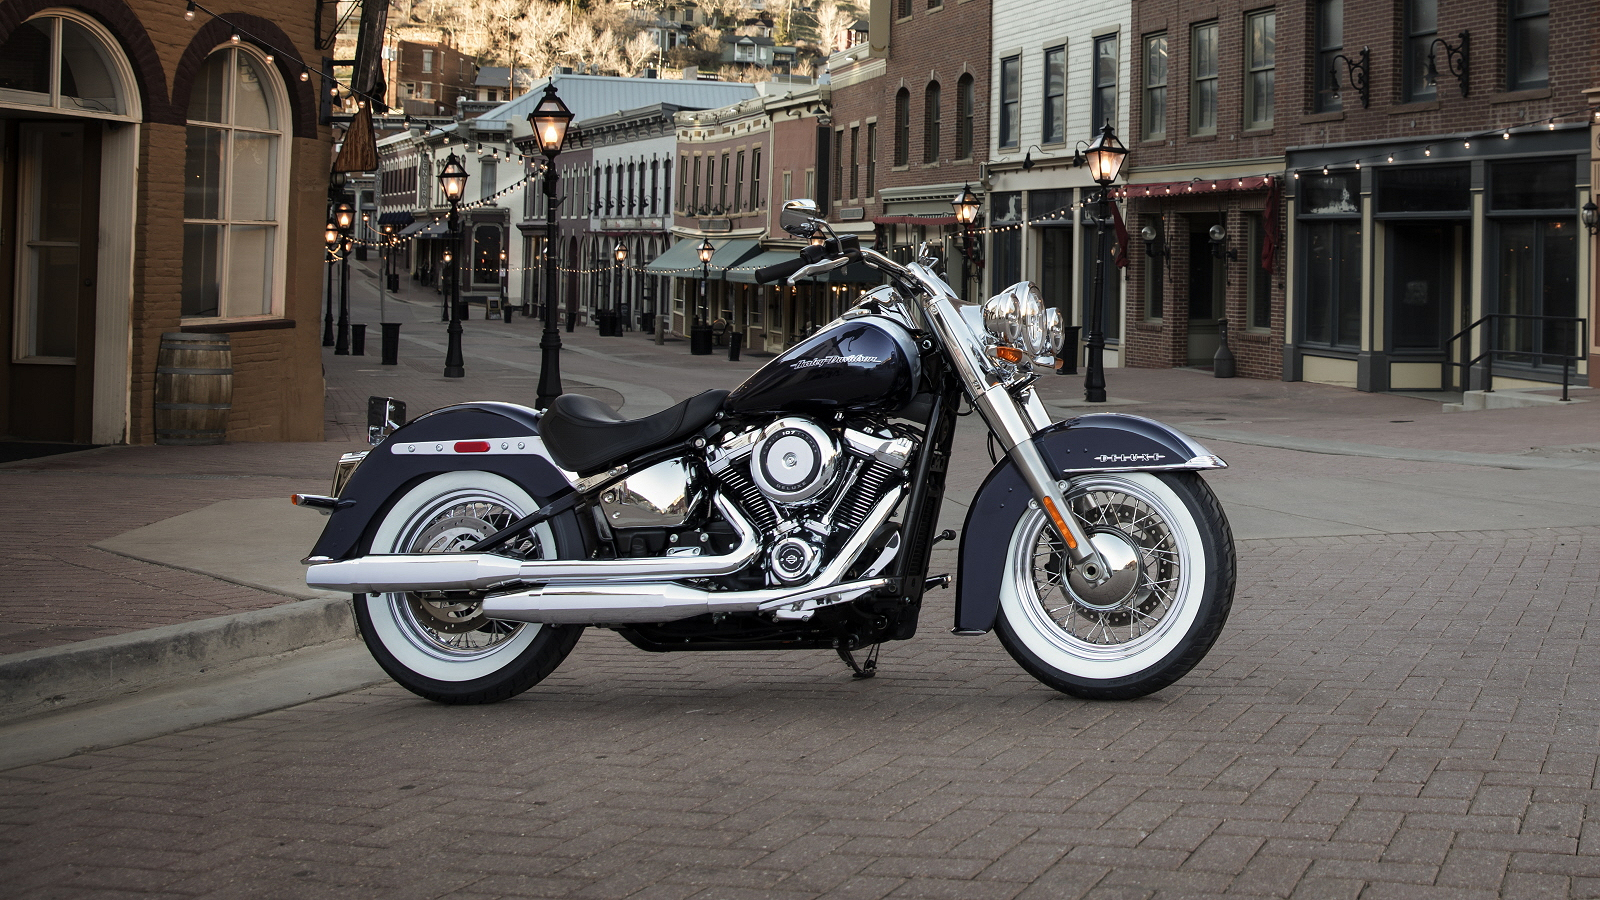 2018 Harley-Davidson Softail Deluxe Pictures, Photos ...